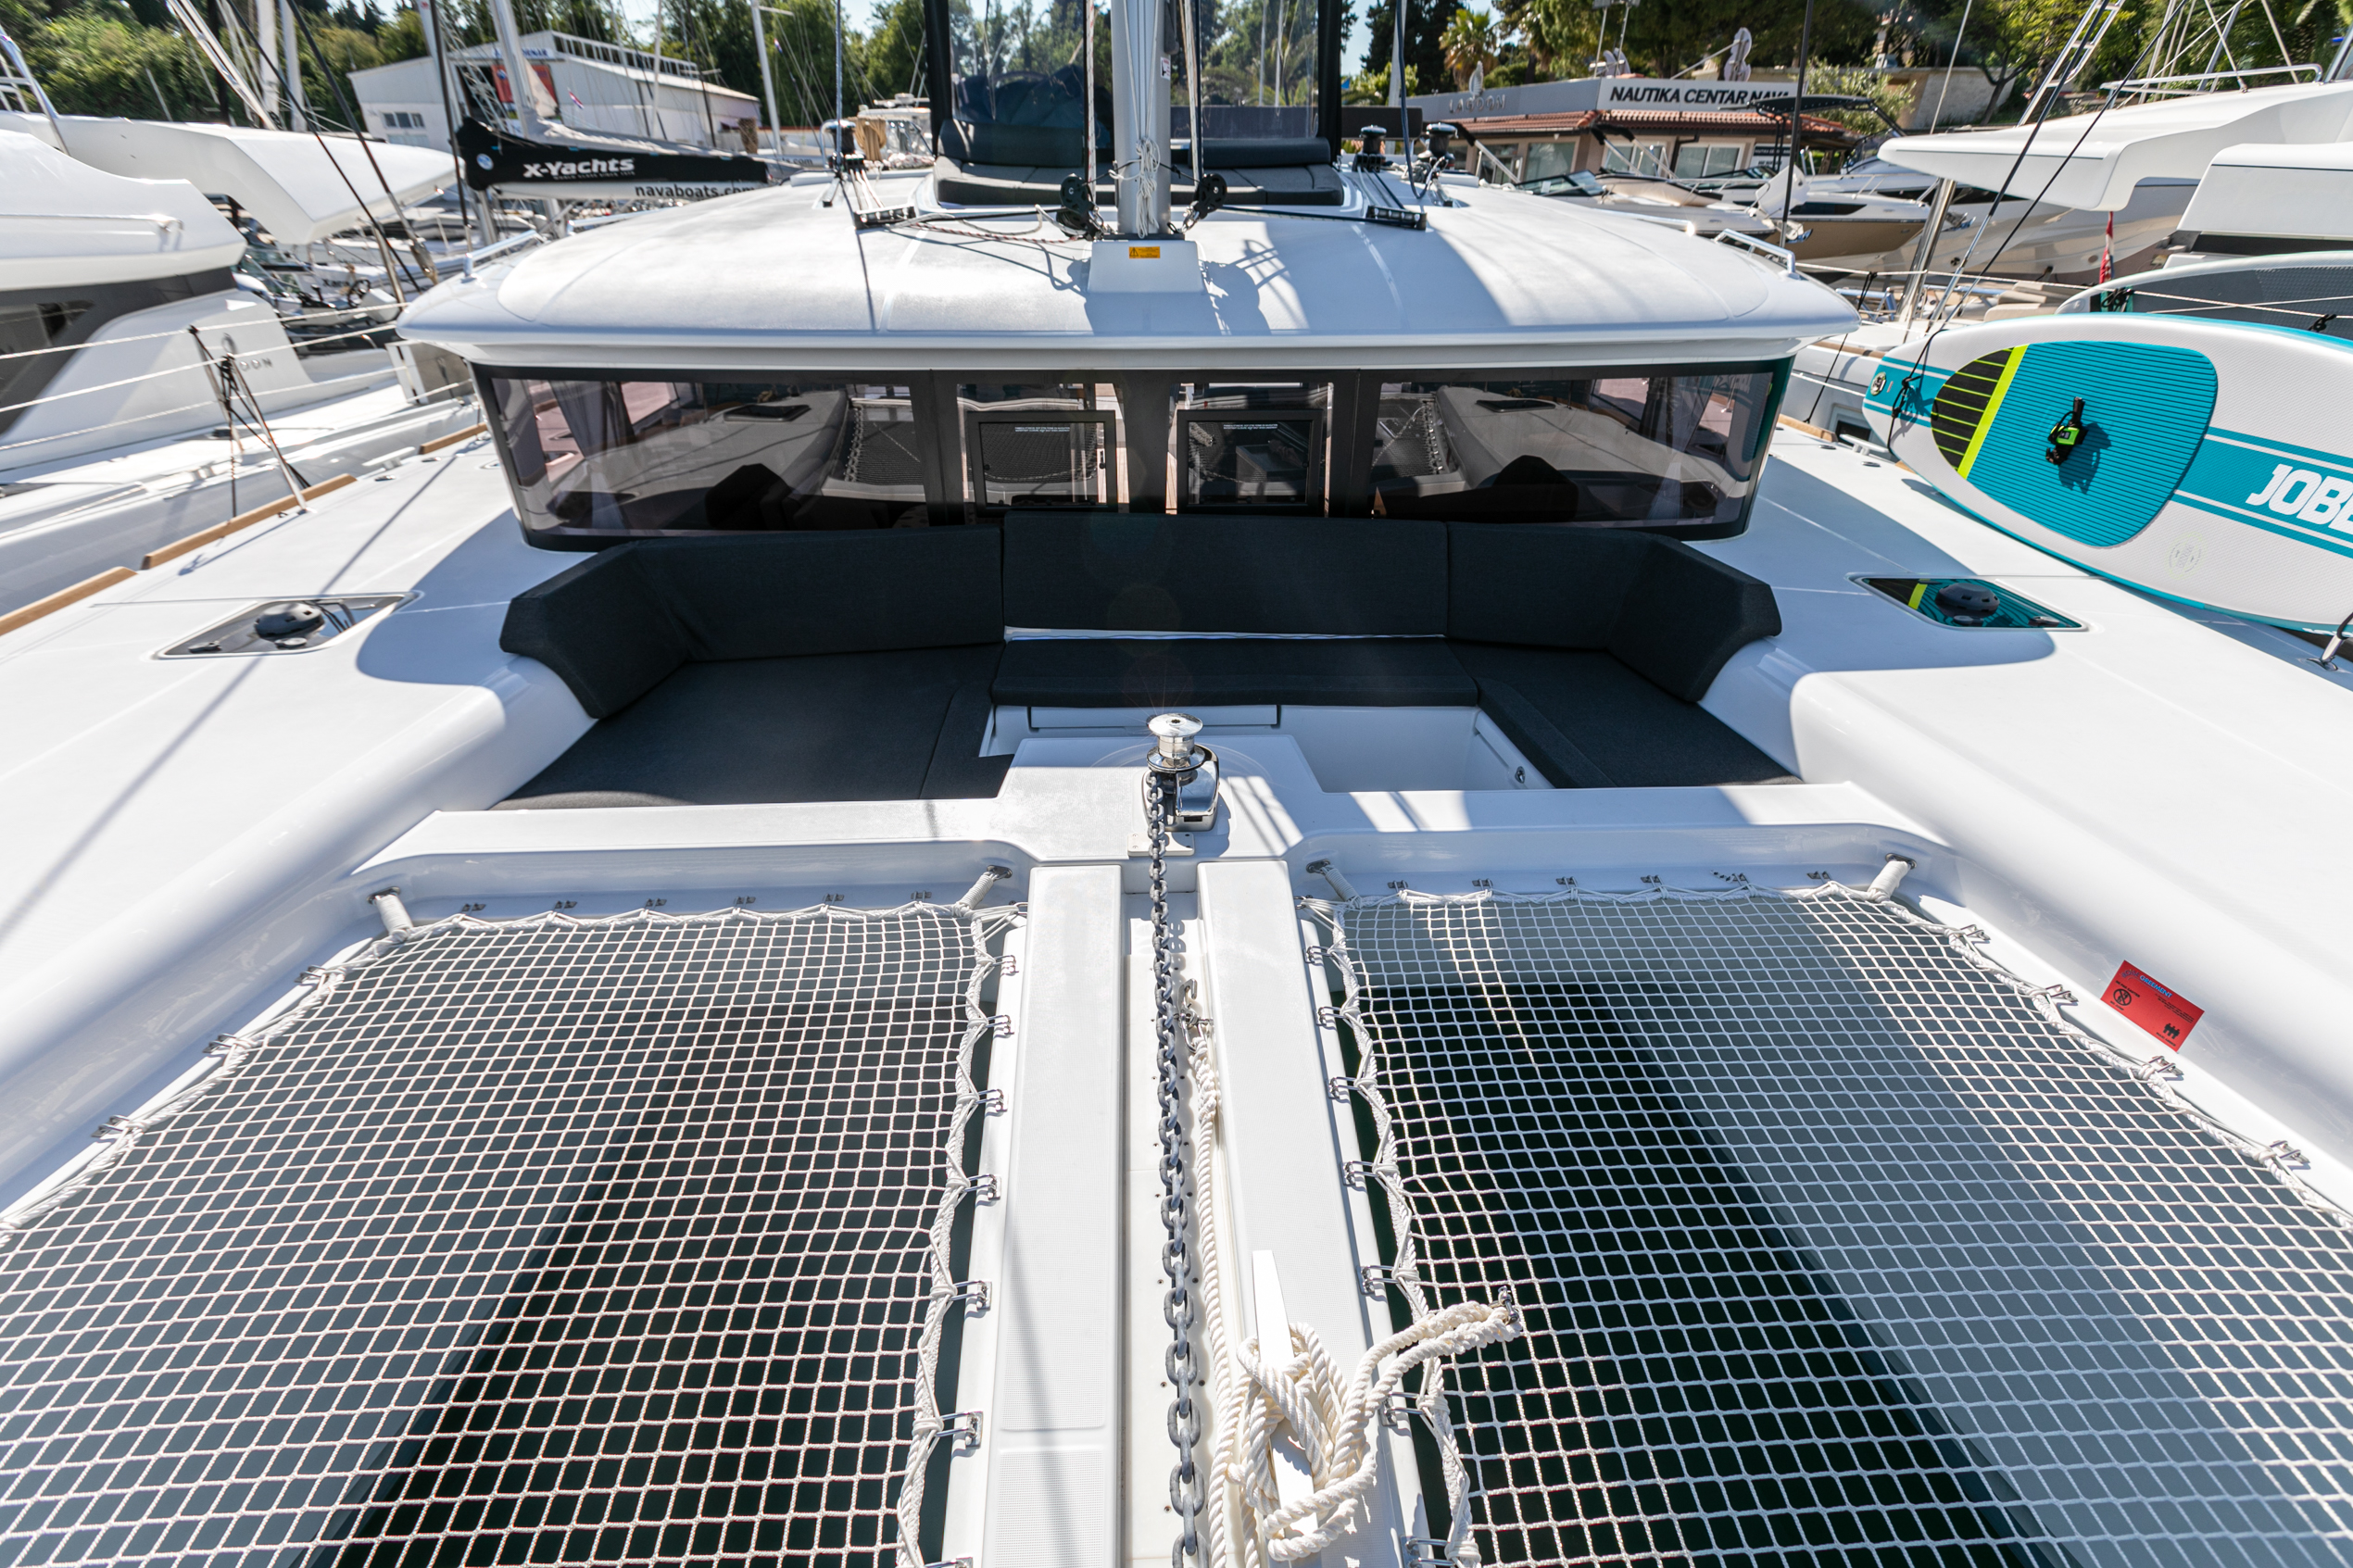 Lagoon 450 F (2019) equipped with generator, A/C ( (WIDE DREAM)  - 1